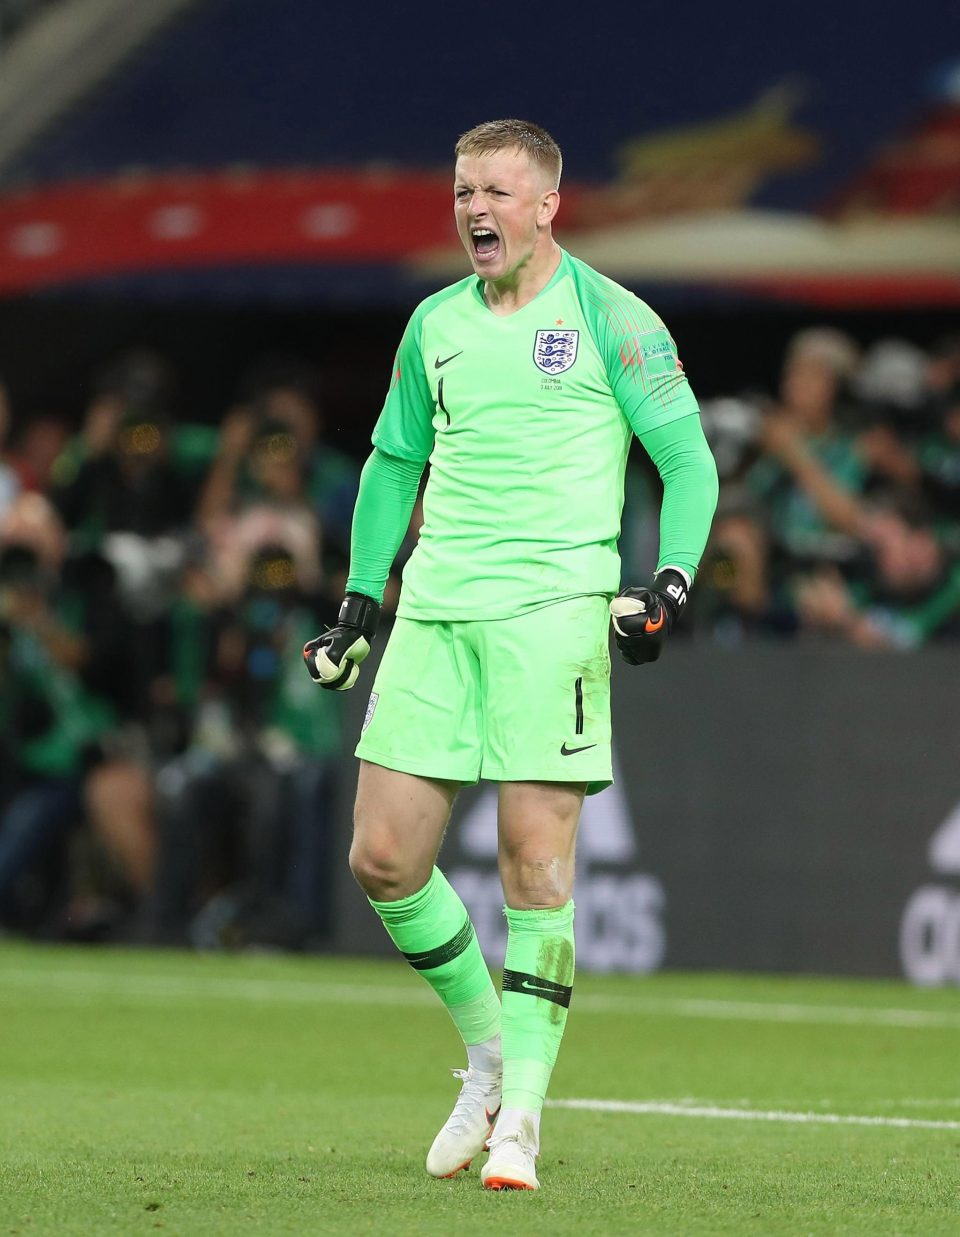 Jordan Pickford - England Football squads Goalkeeper